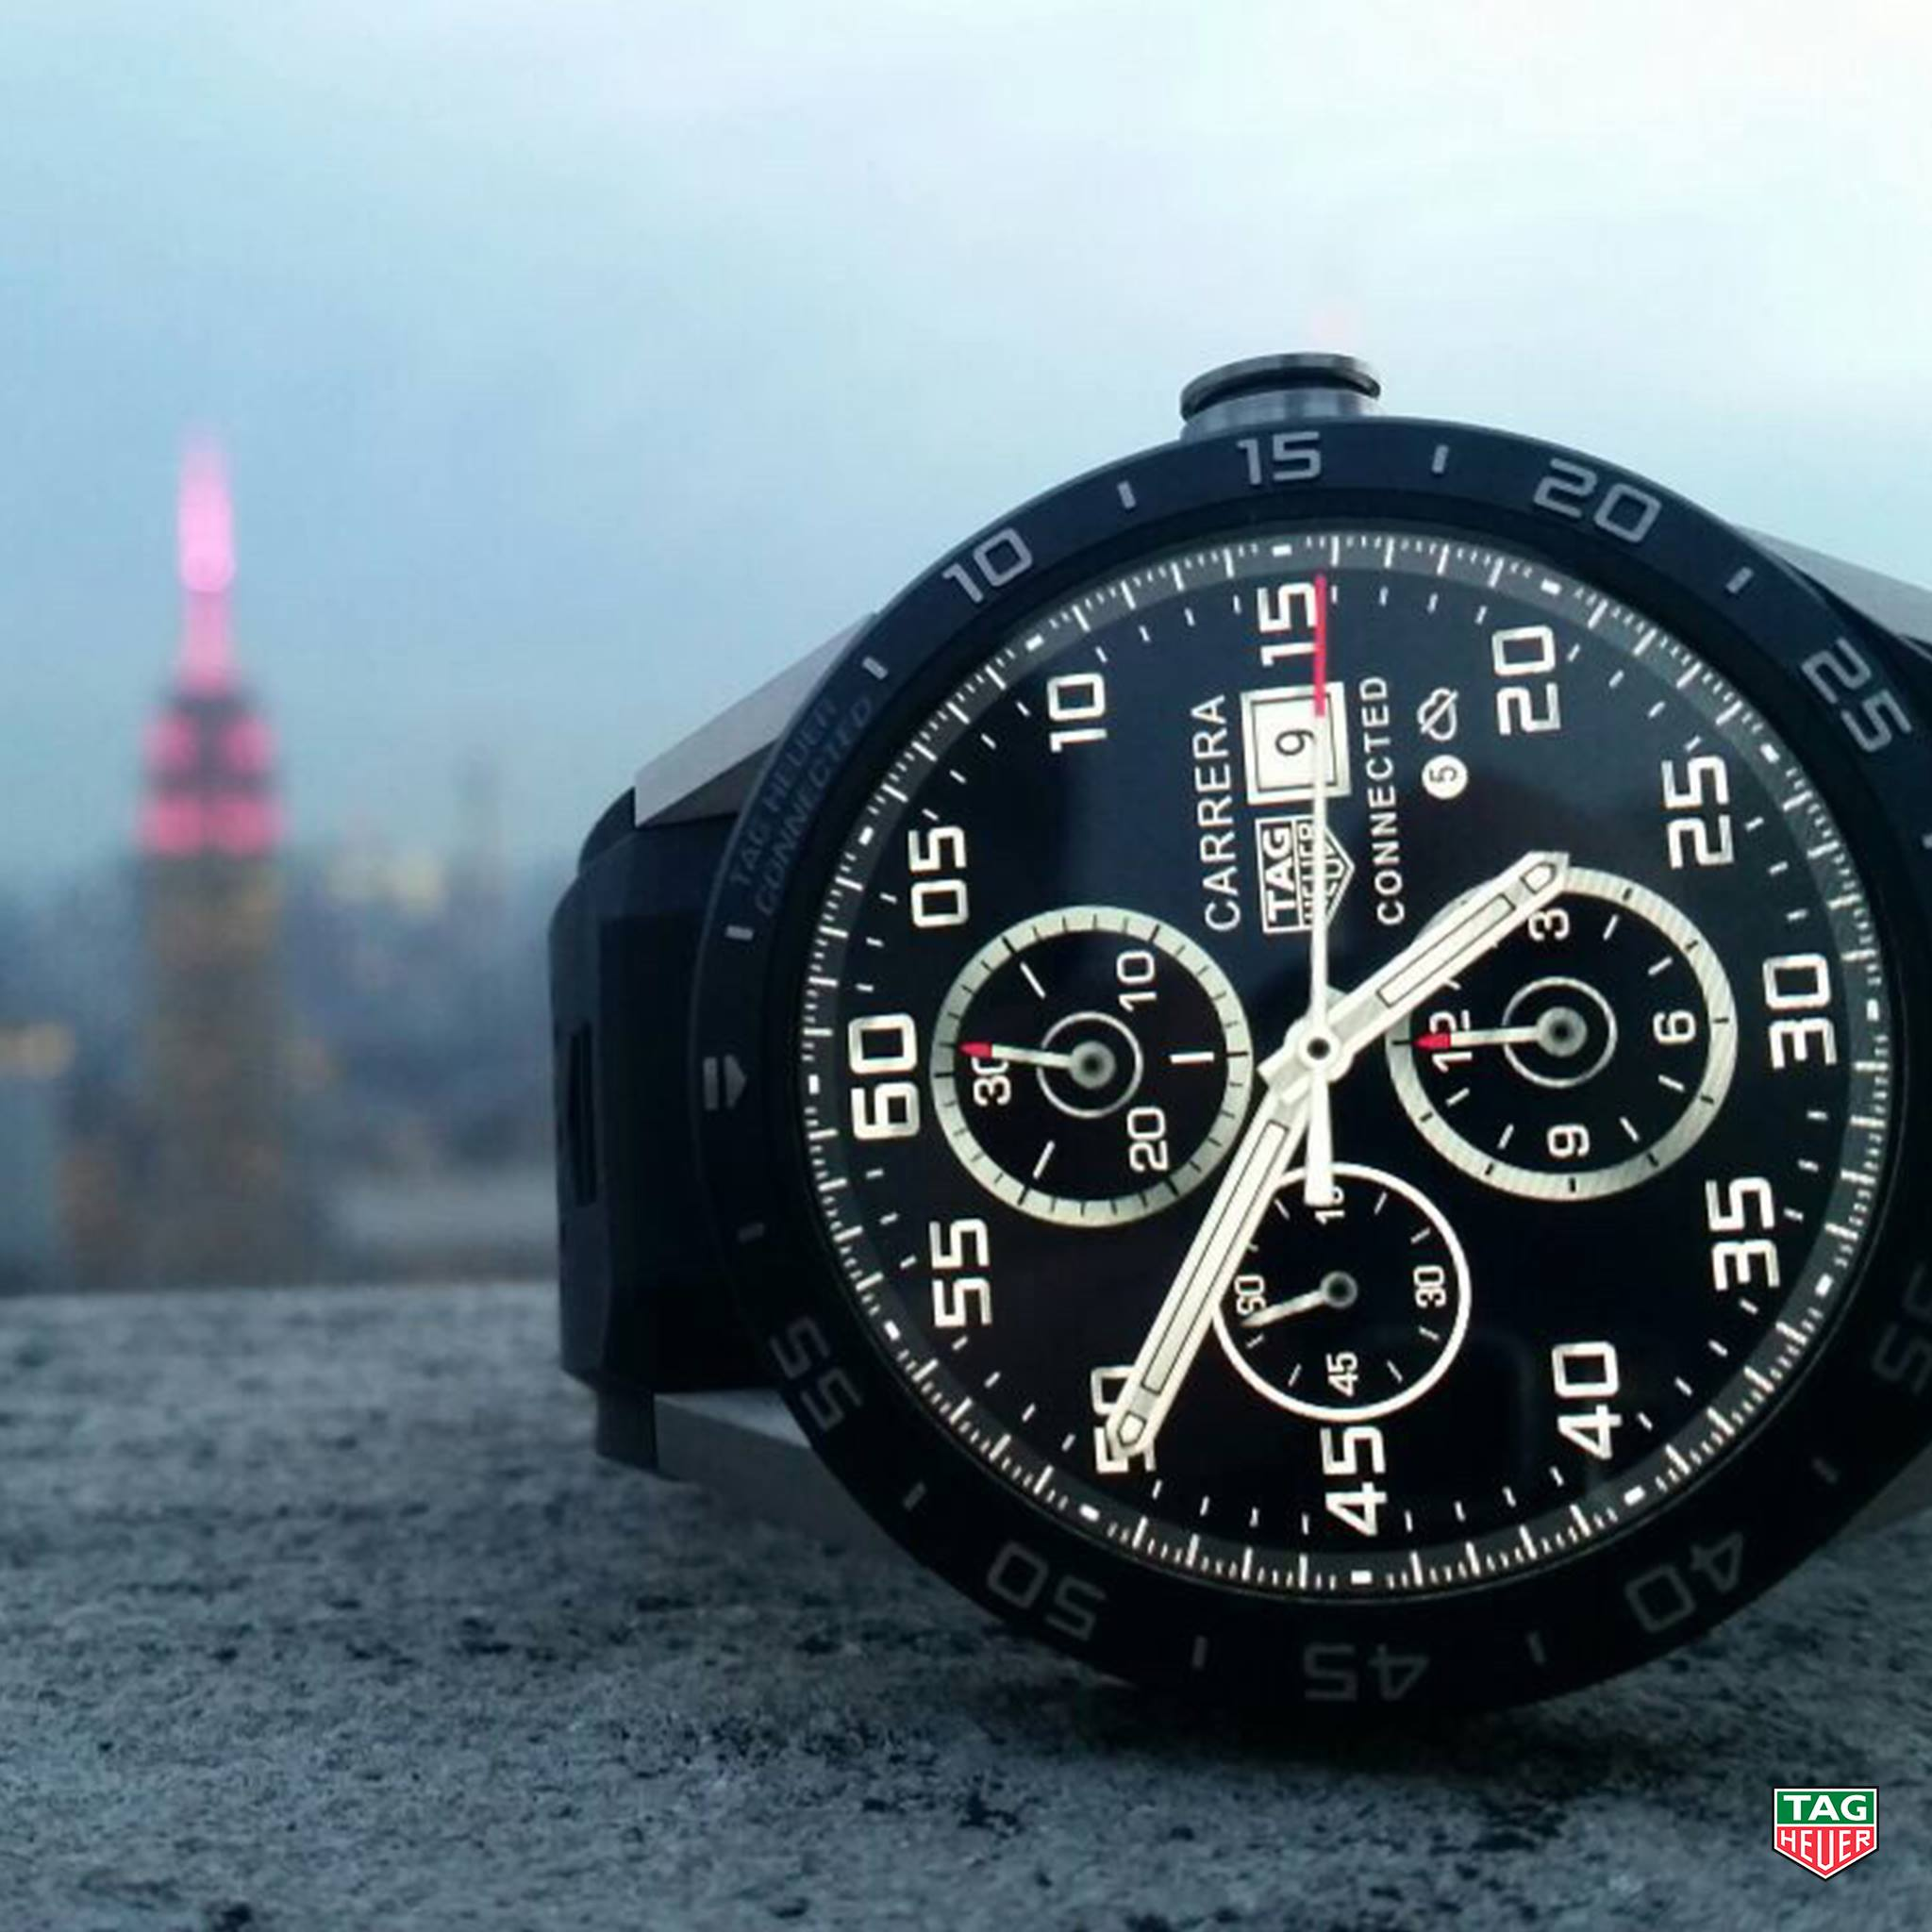 tag-heuer-connected-android-smartwatch-lusso-2015